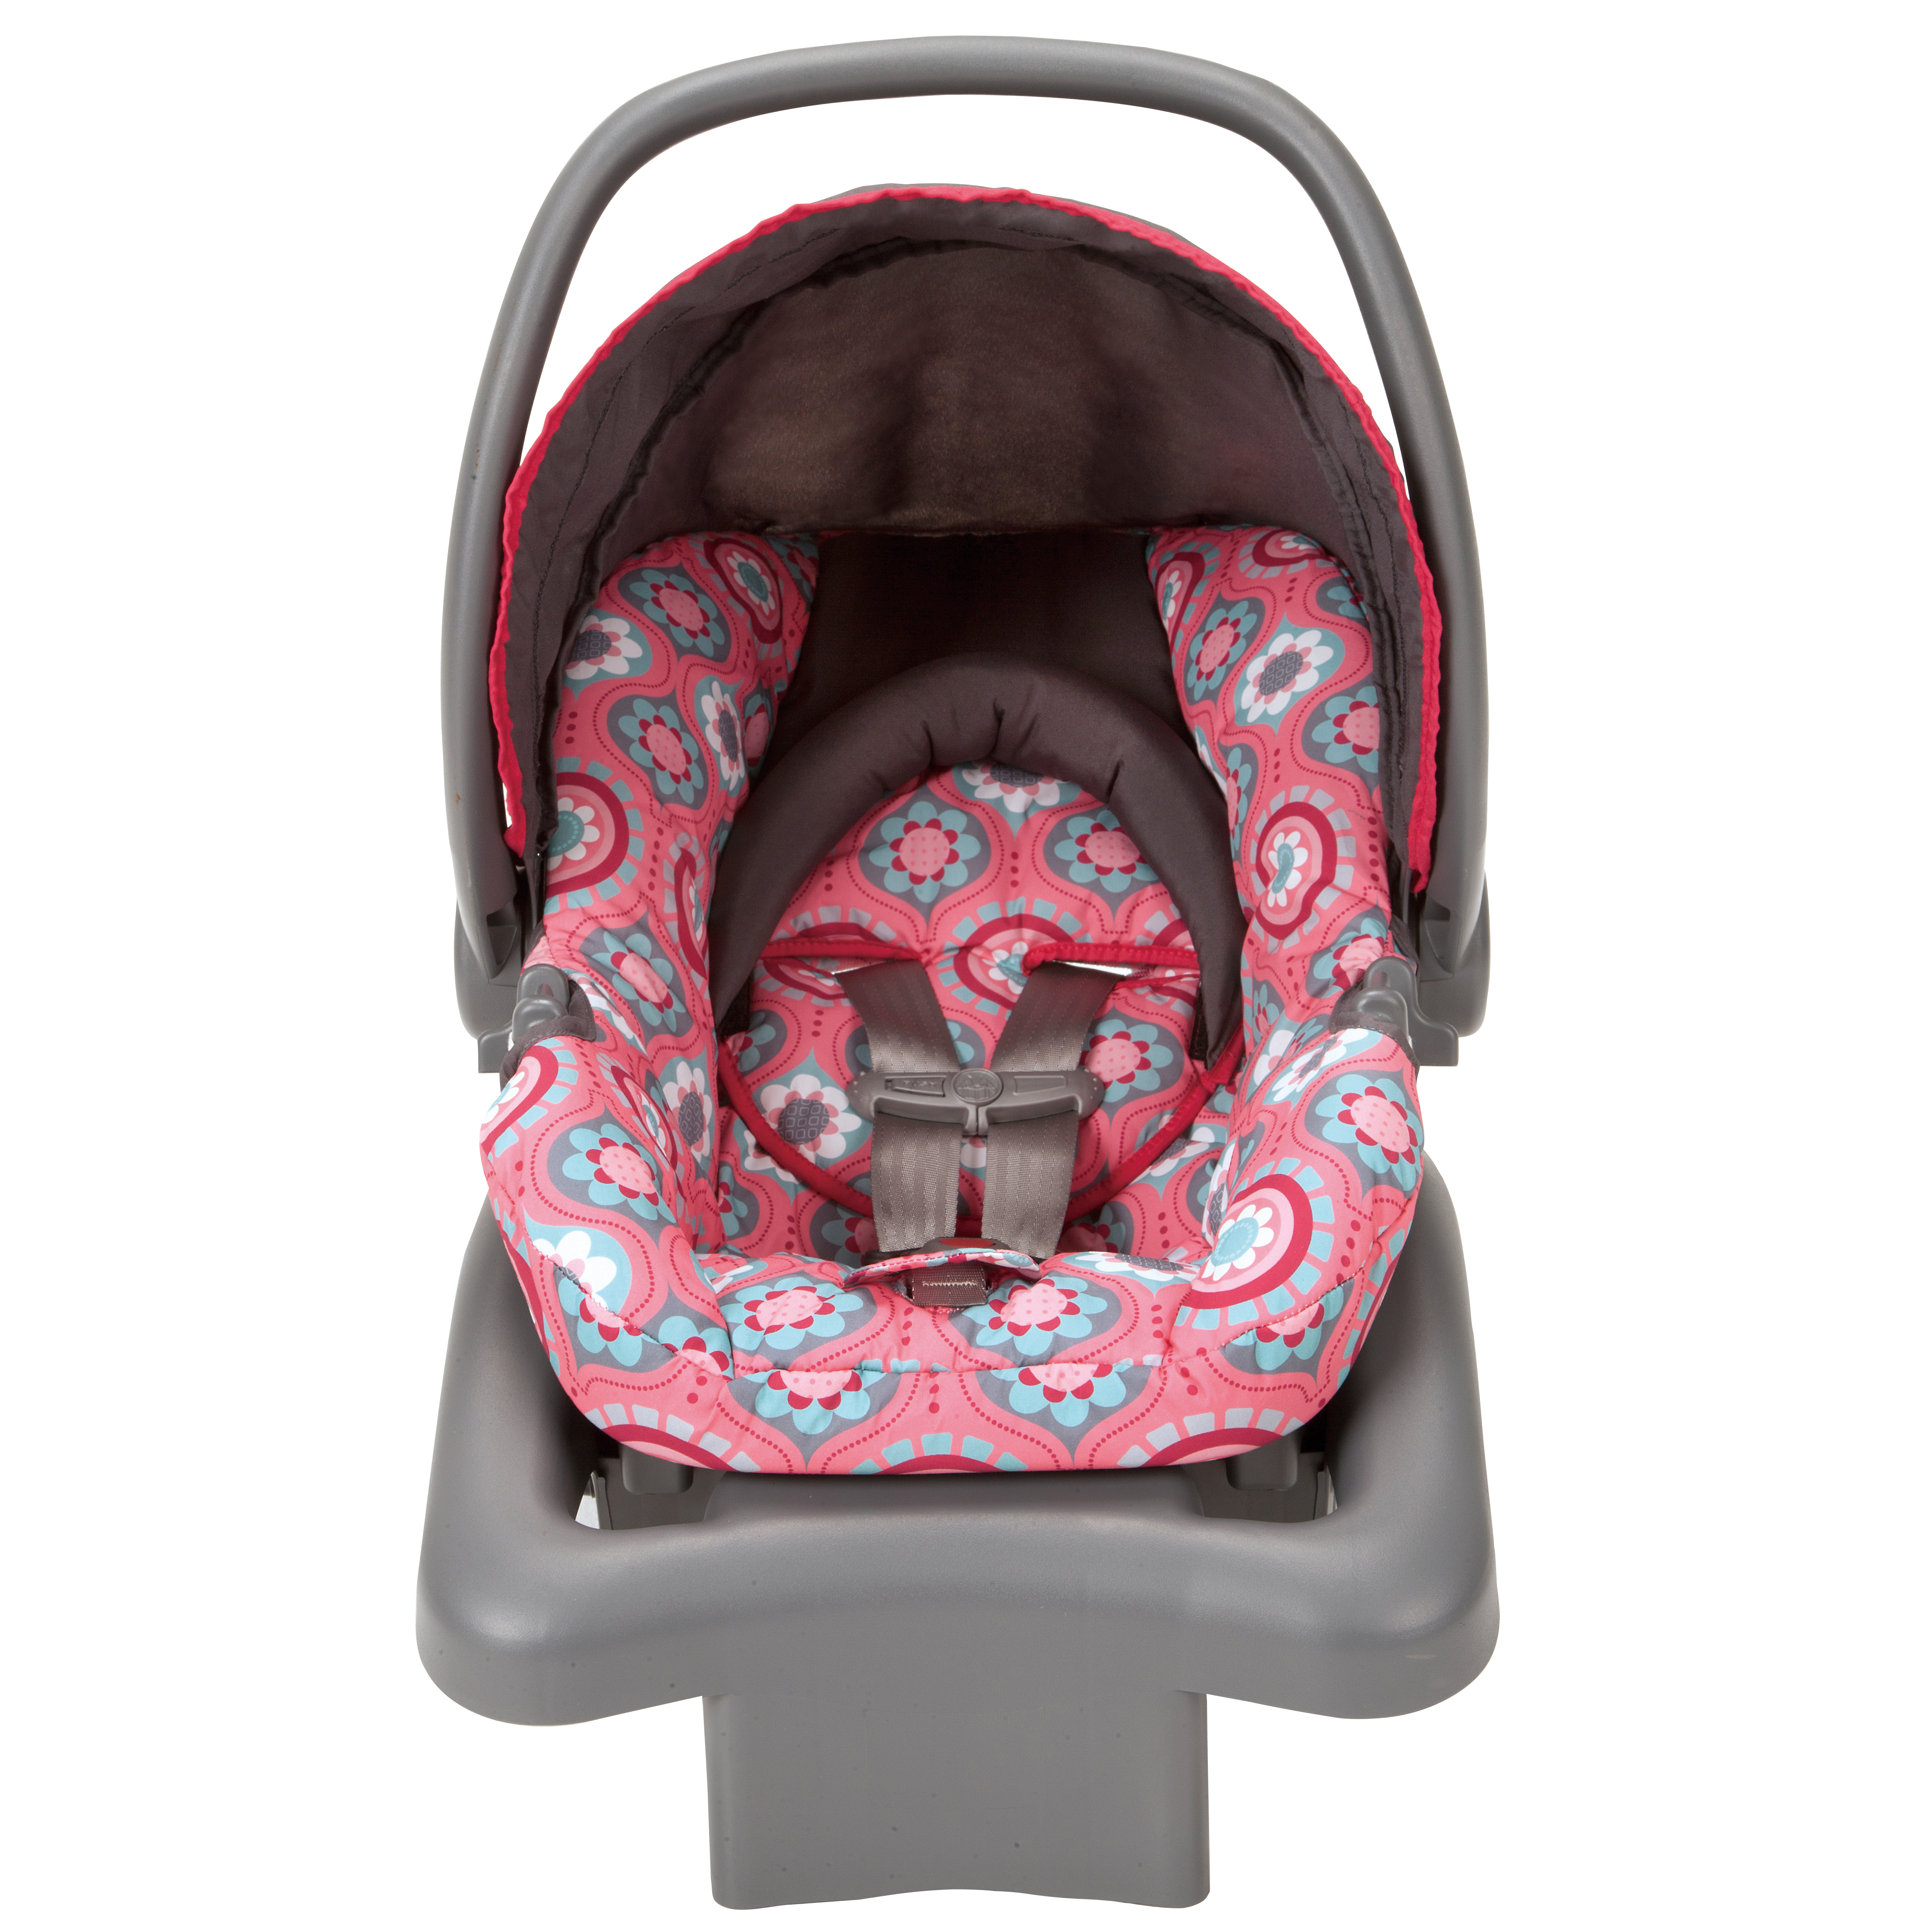 Cosco Light 'N Comfy DX Infant Car Seat, Choose Your Pattern